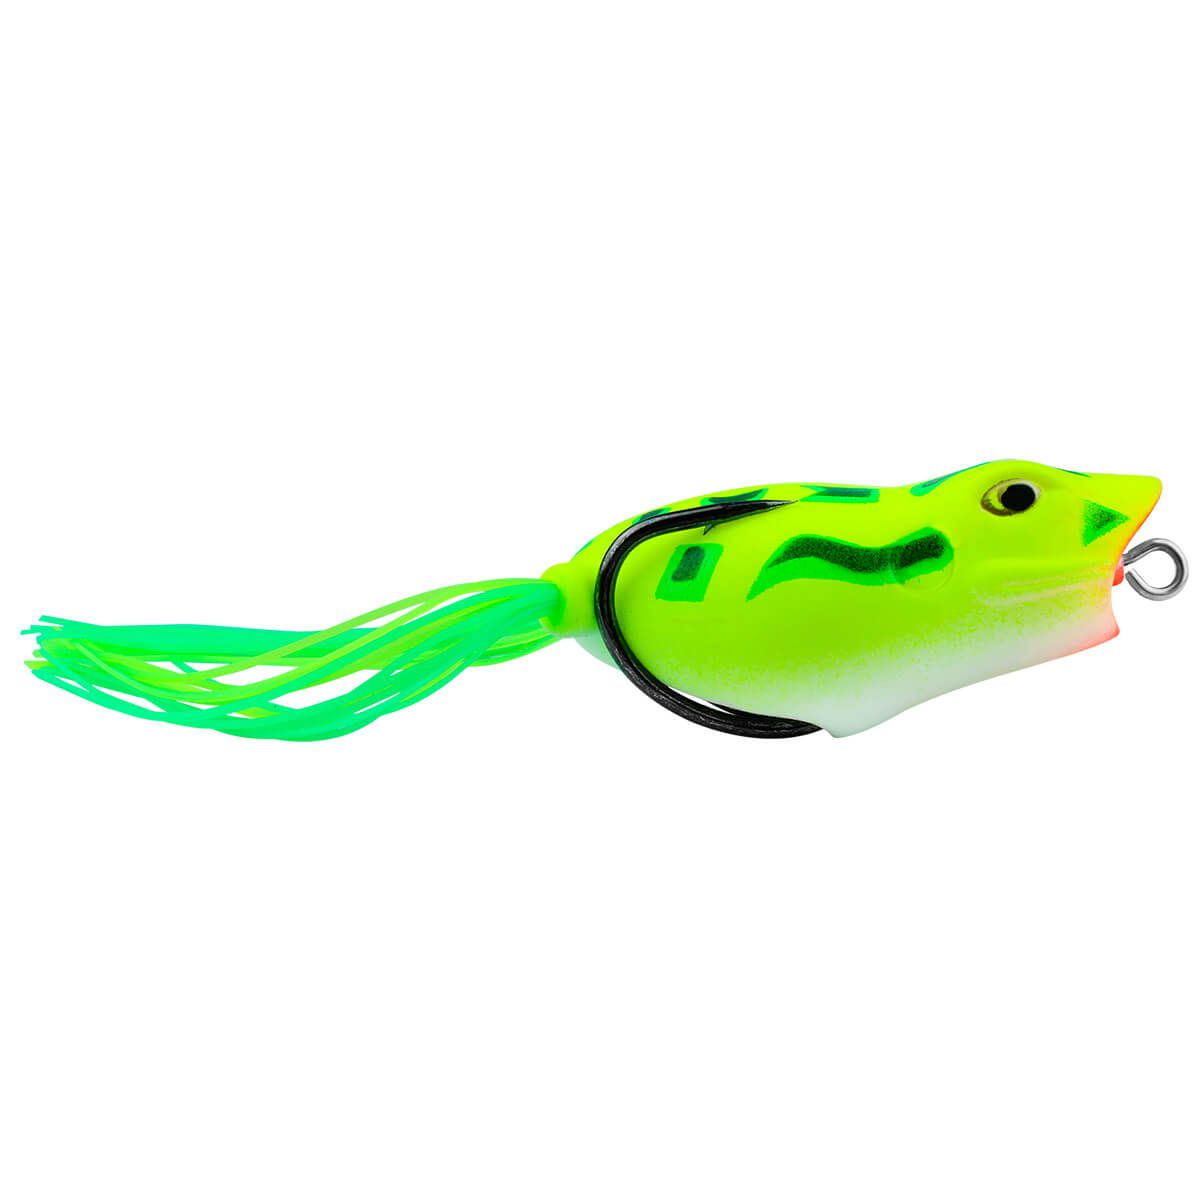 Isca Artificial Albatroz Fishing Pop Frog XY37 5cm 12gr